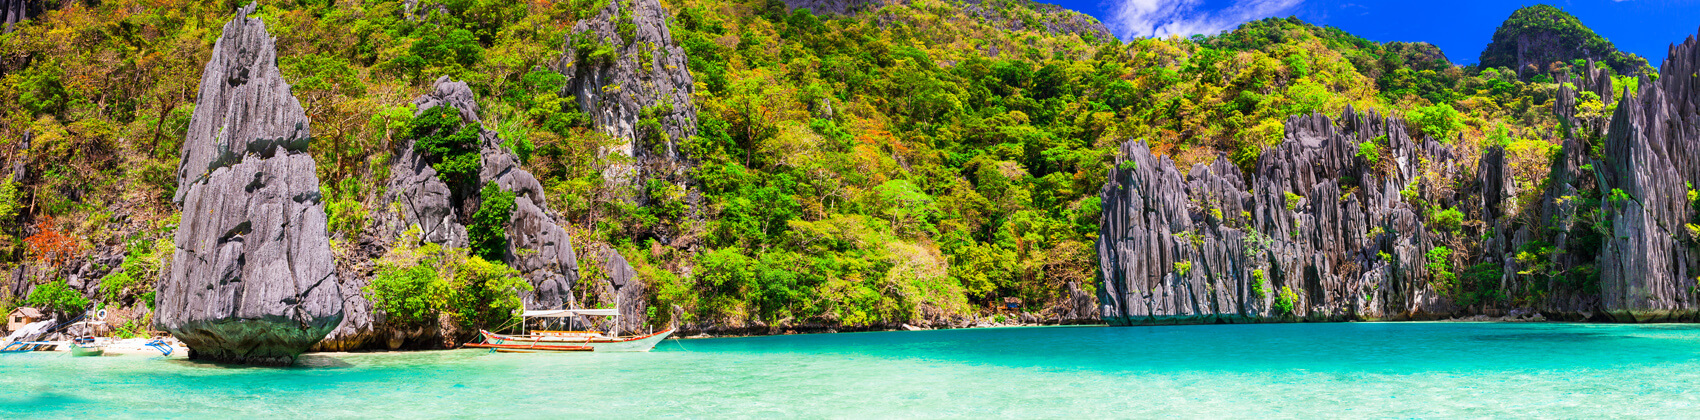 Travel Packages: Palawan